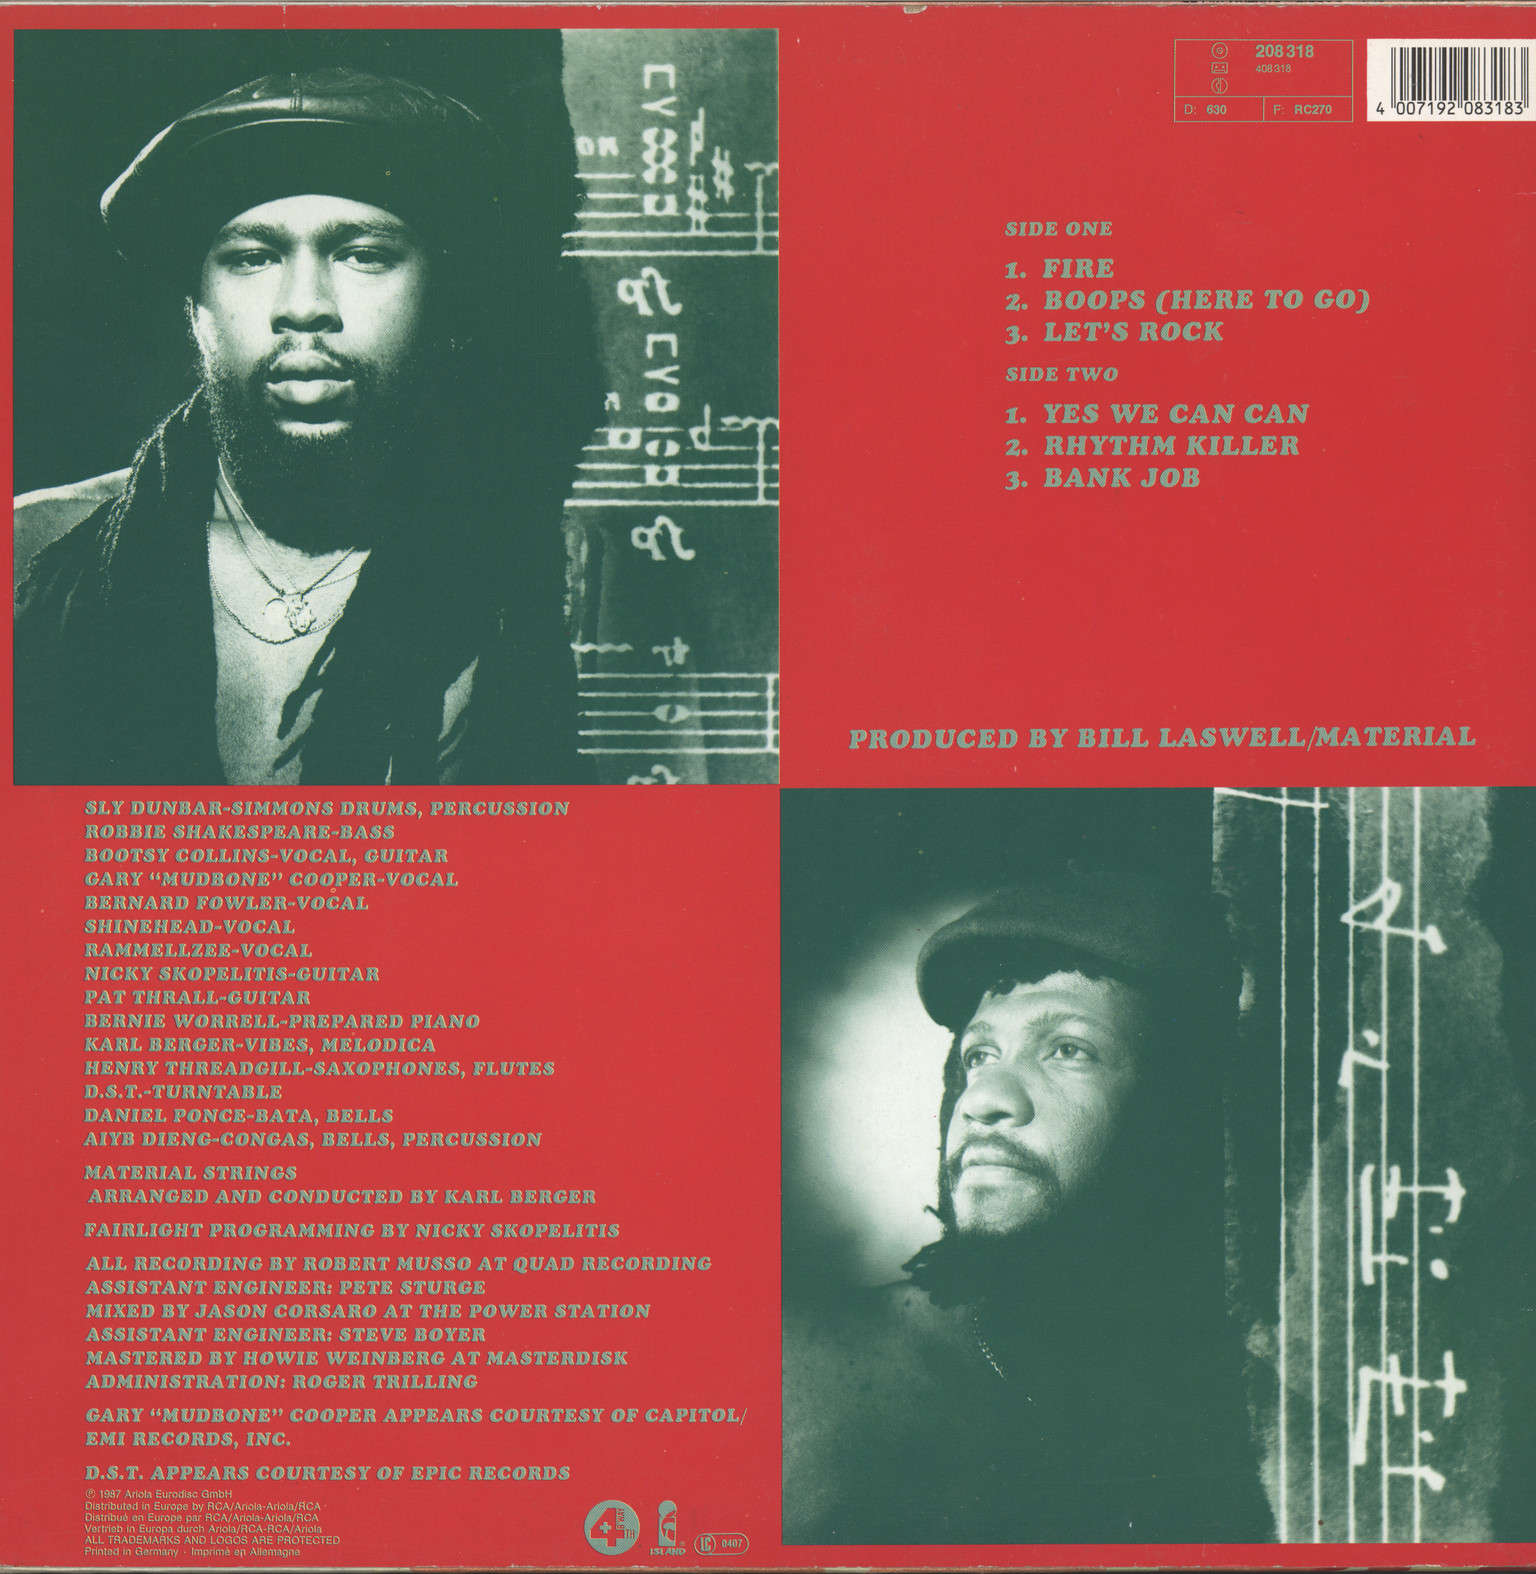 Sly + Robbie: Rhythm Killers, LP (Vinyl)